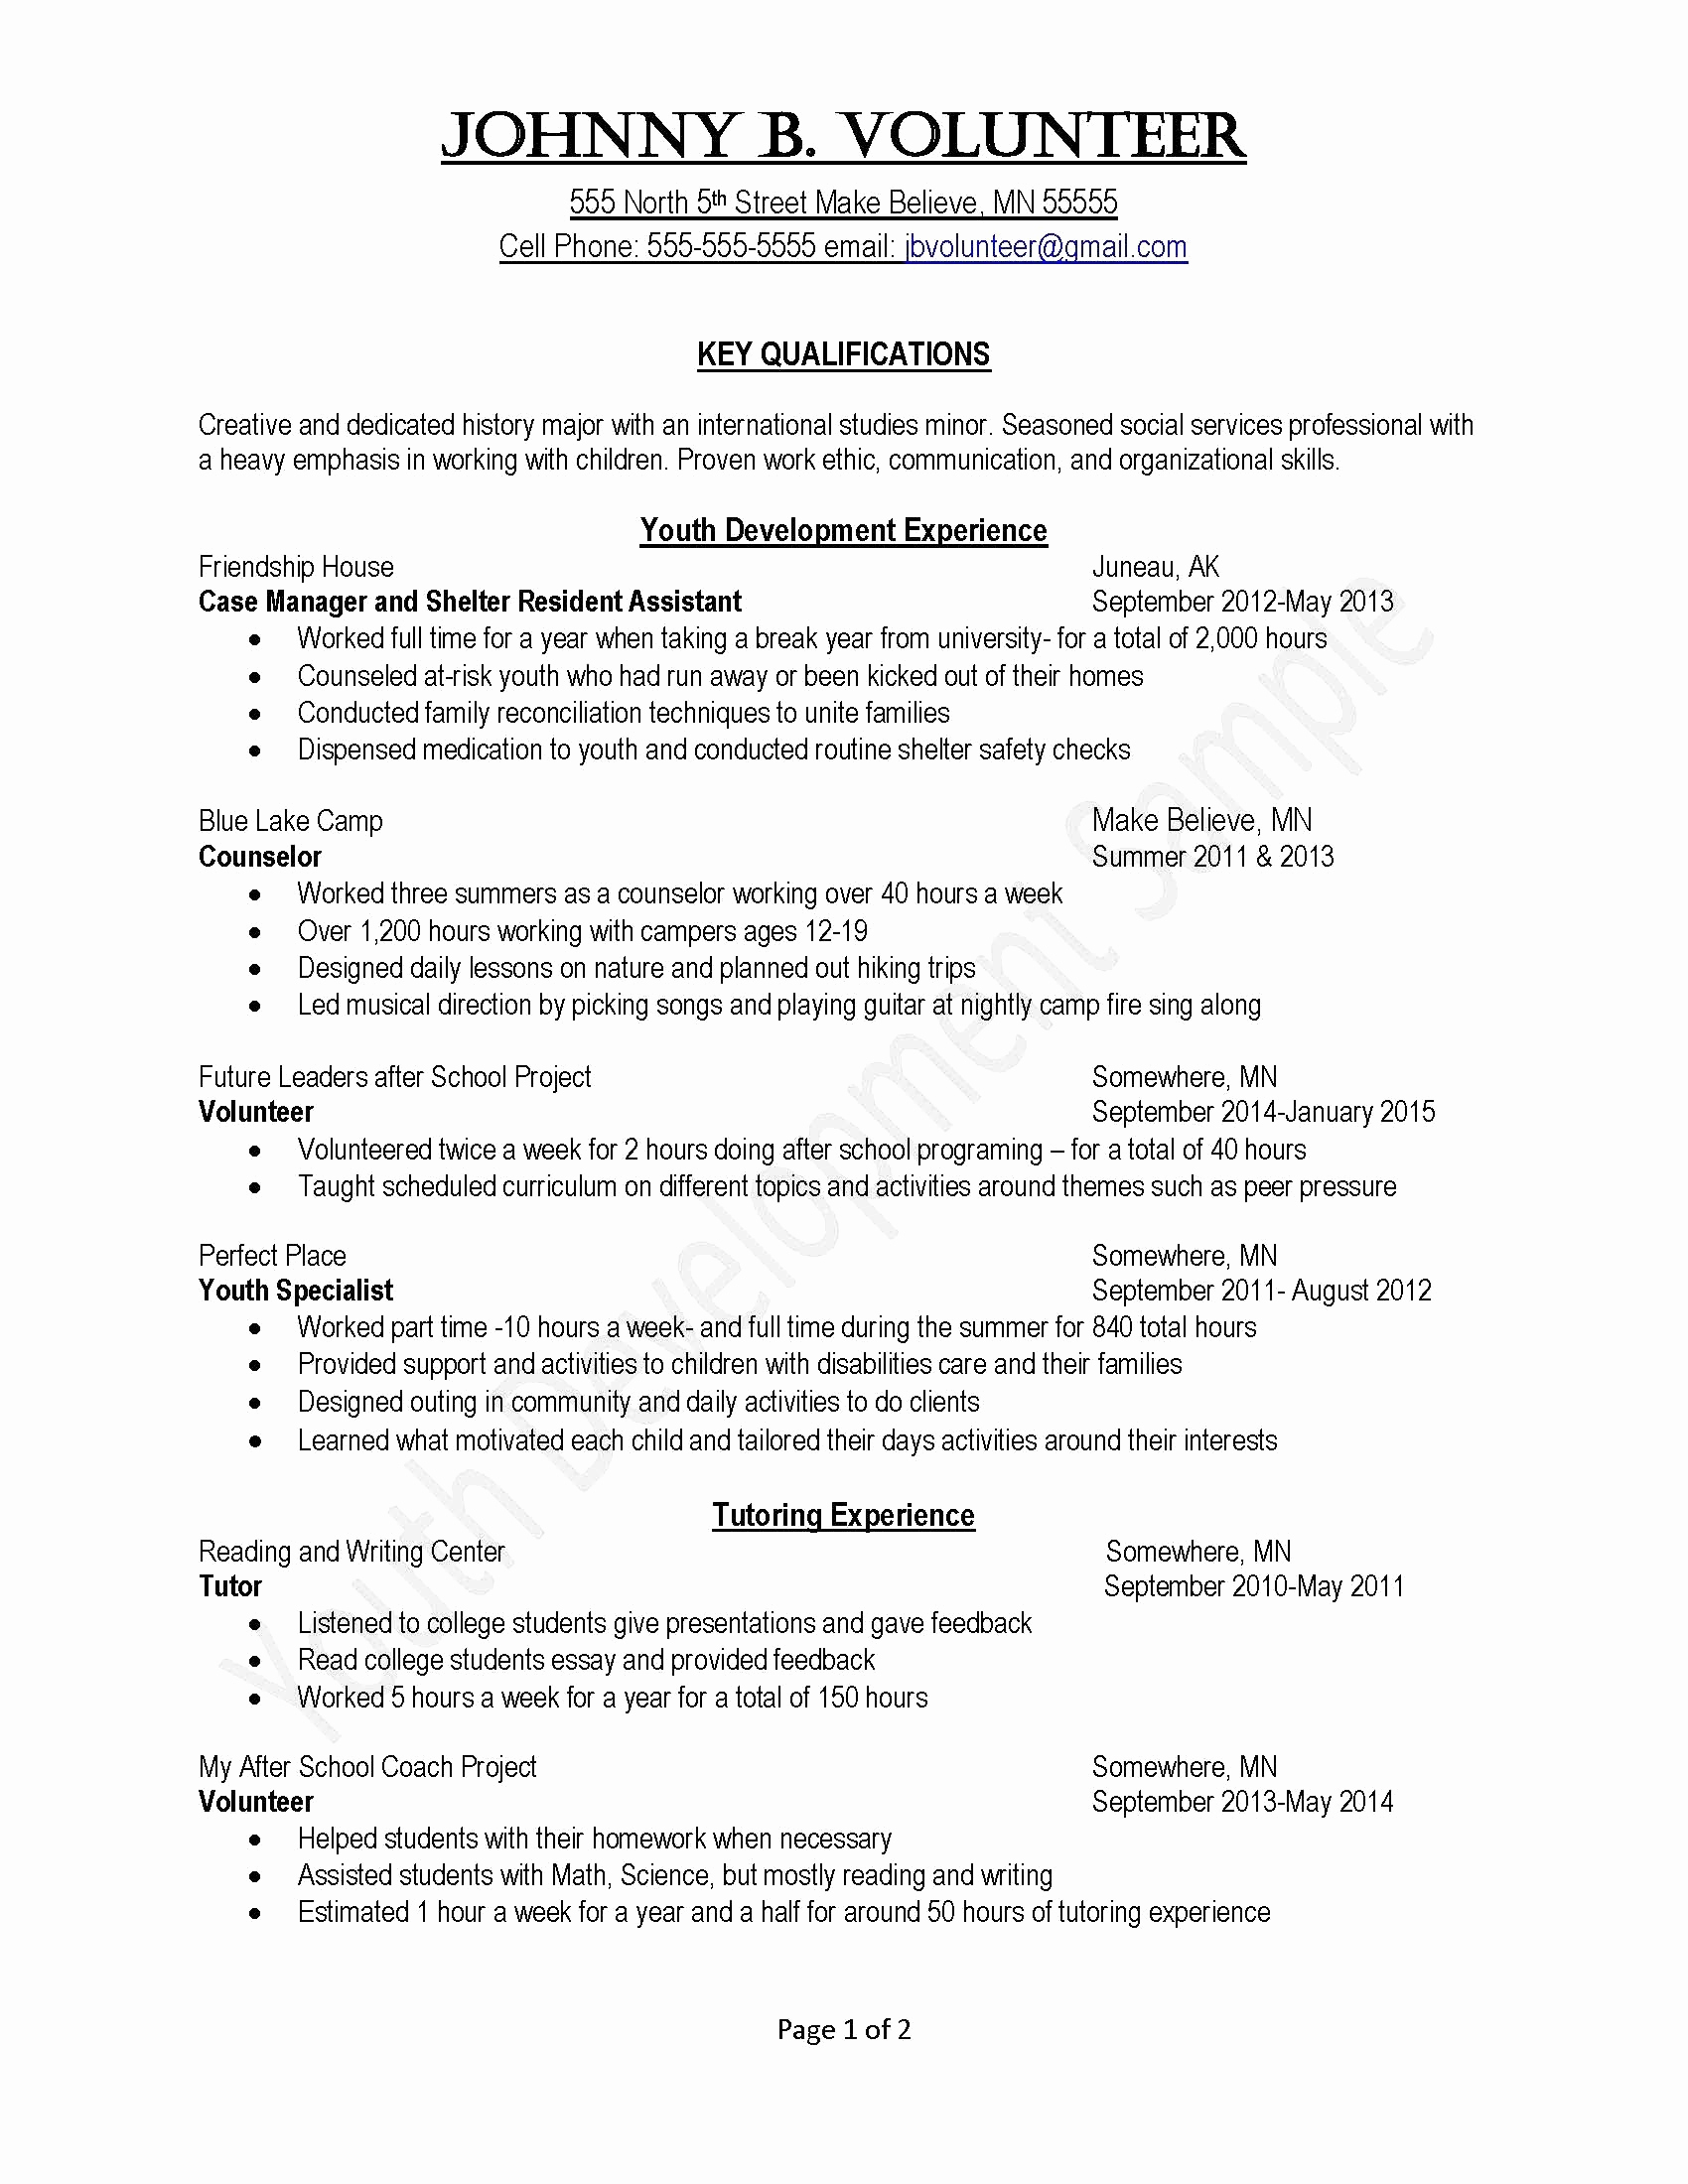 How to Make A Cover Letter Template - Good Cover Letters for Jobs Unique Simple Cover Letter Template